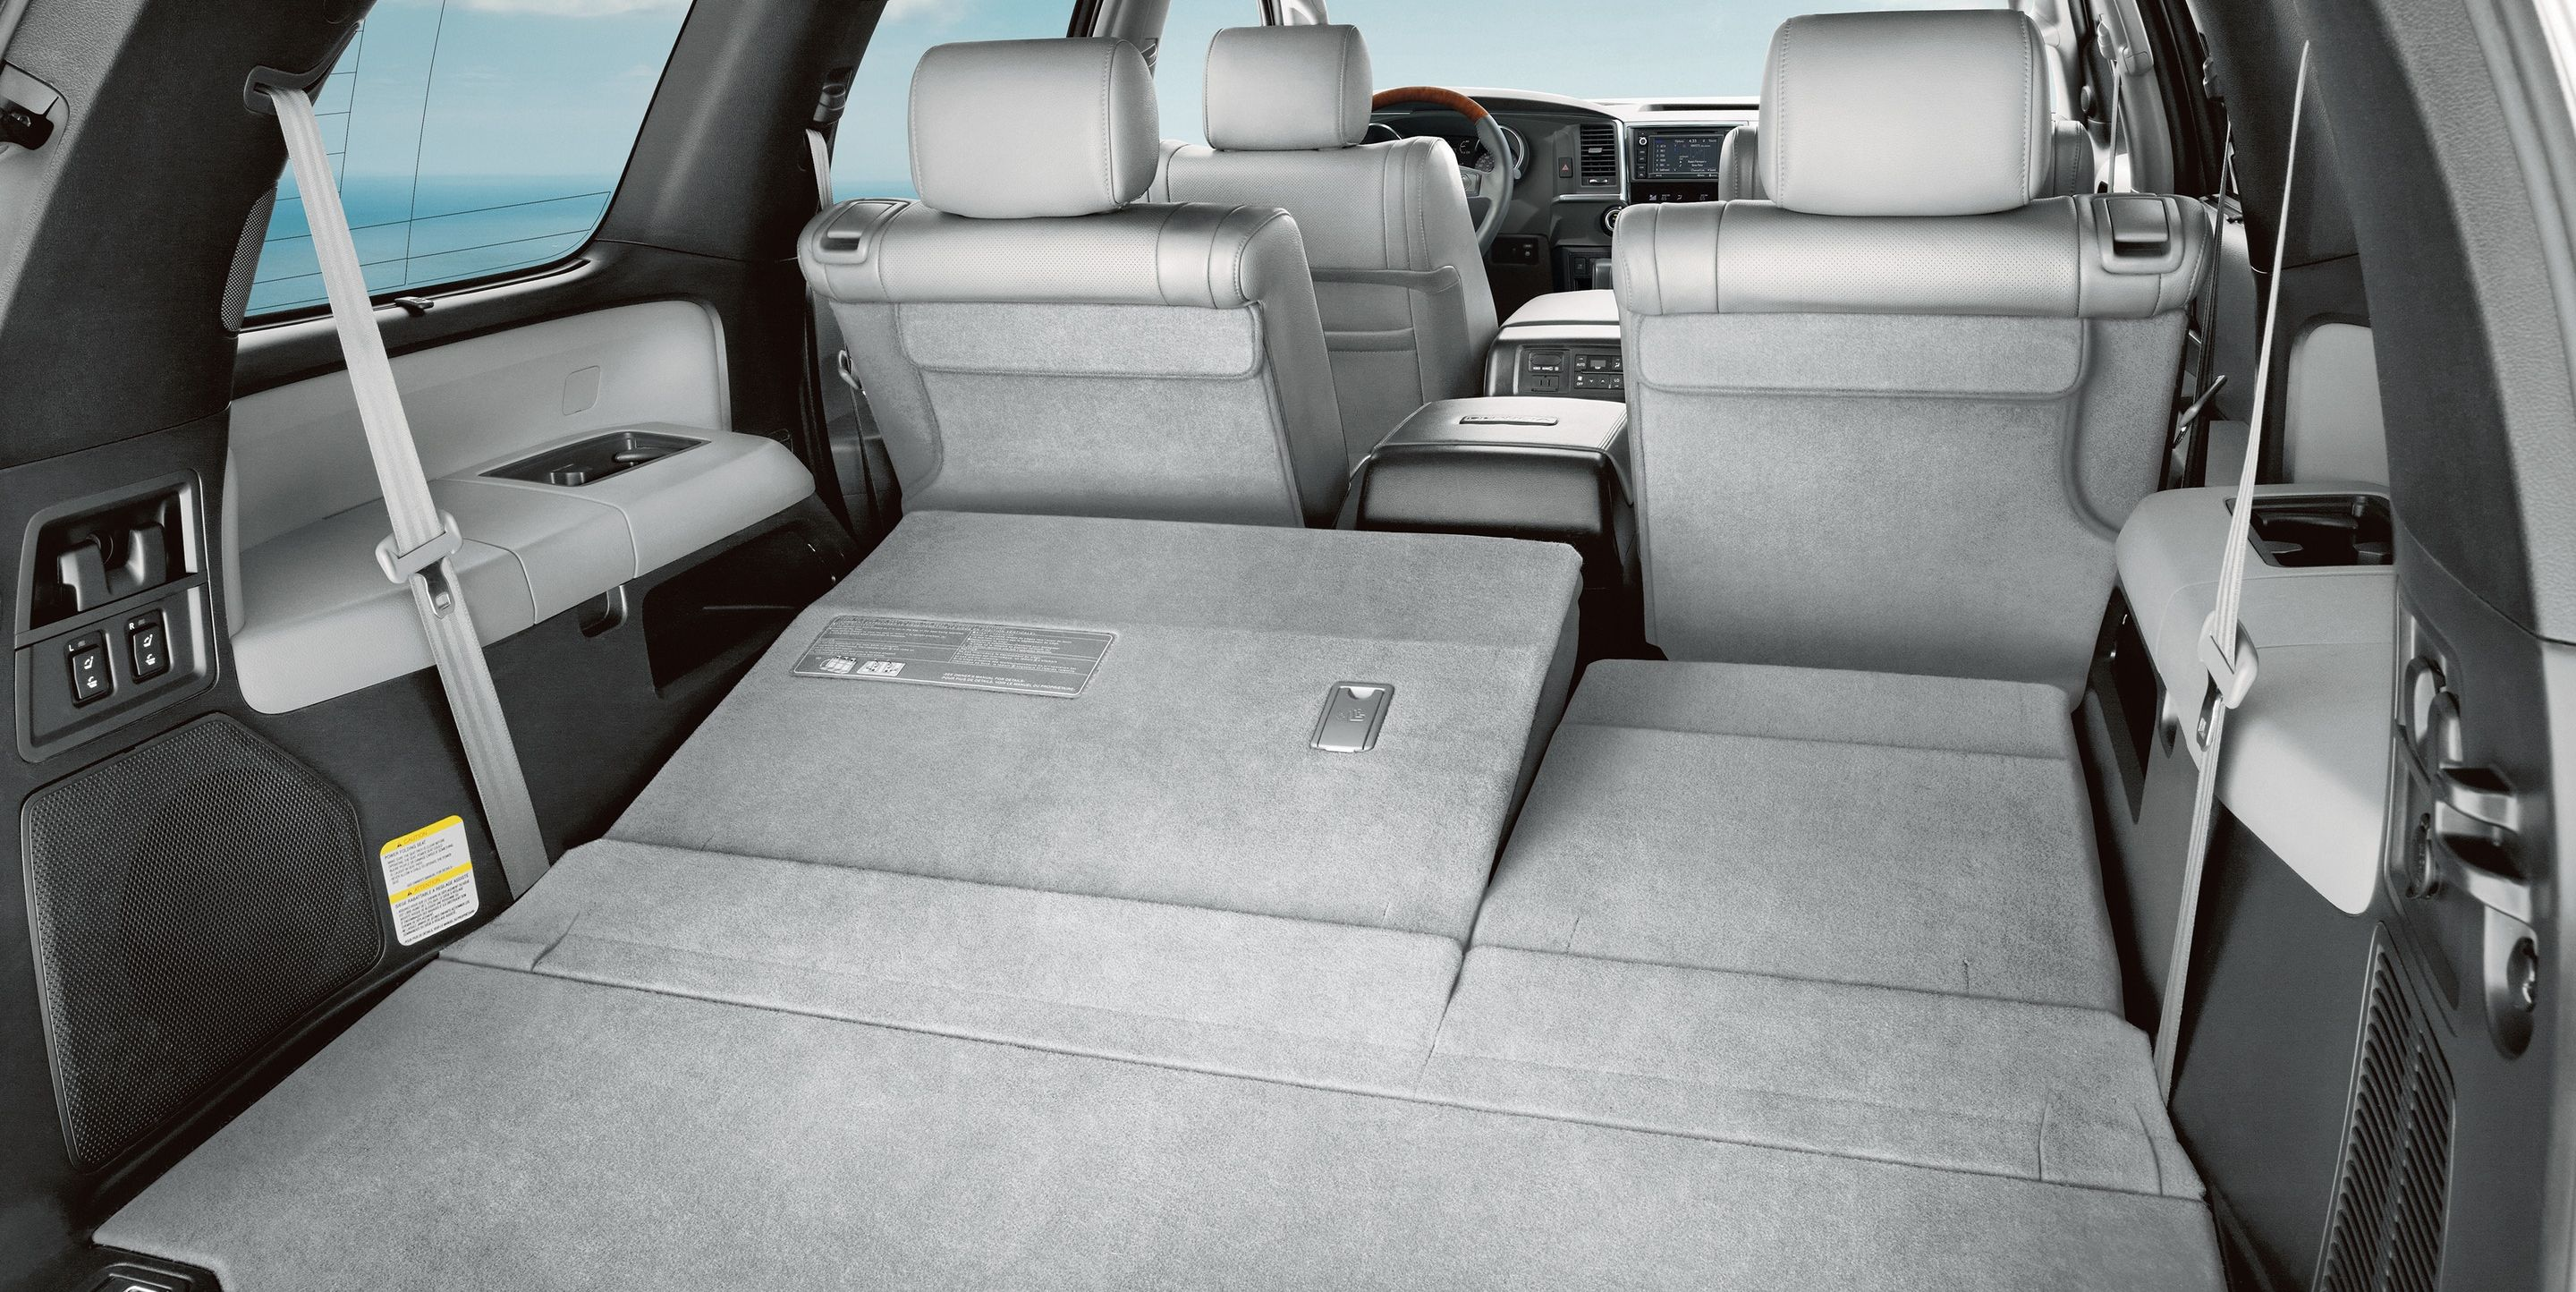 Ample Capacity of the Toyota Sequoia